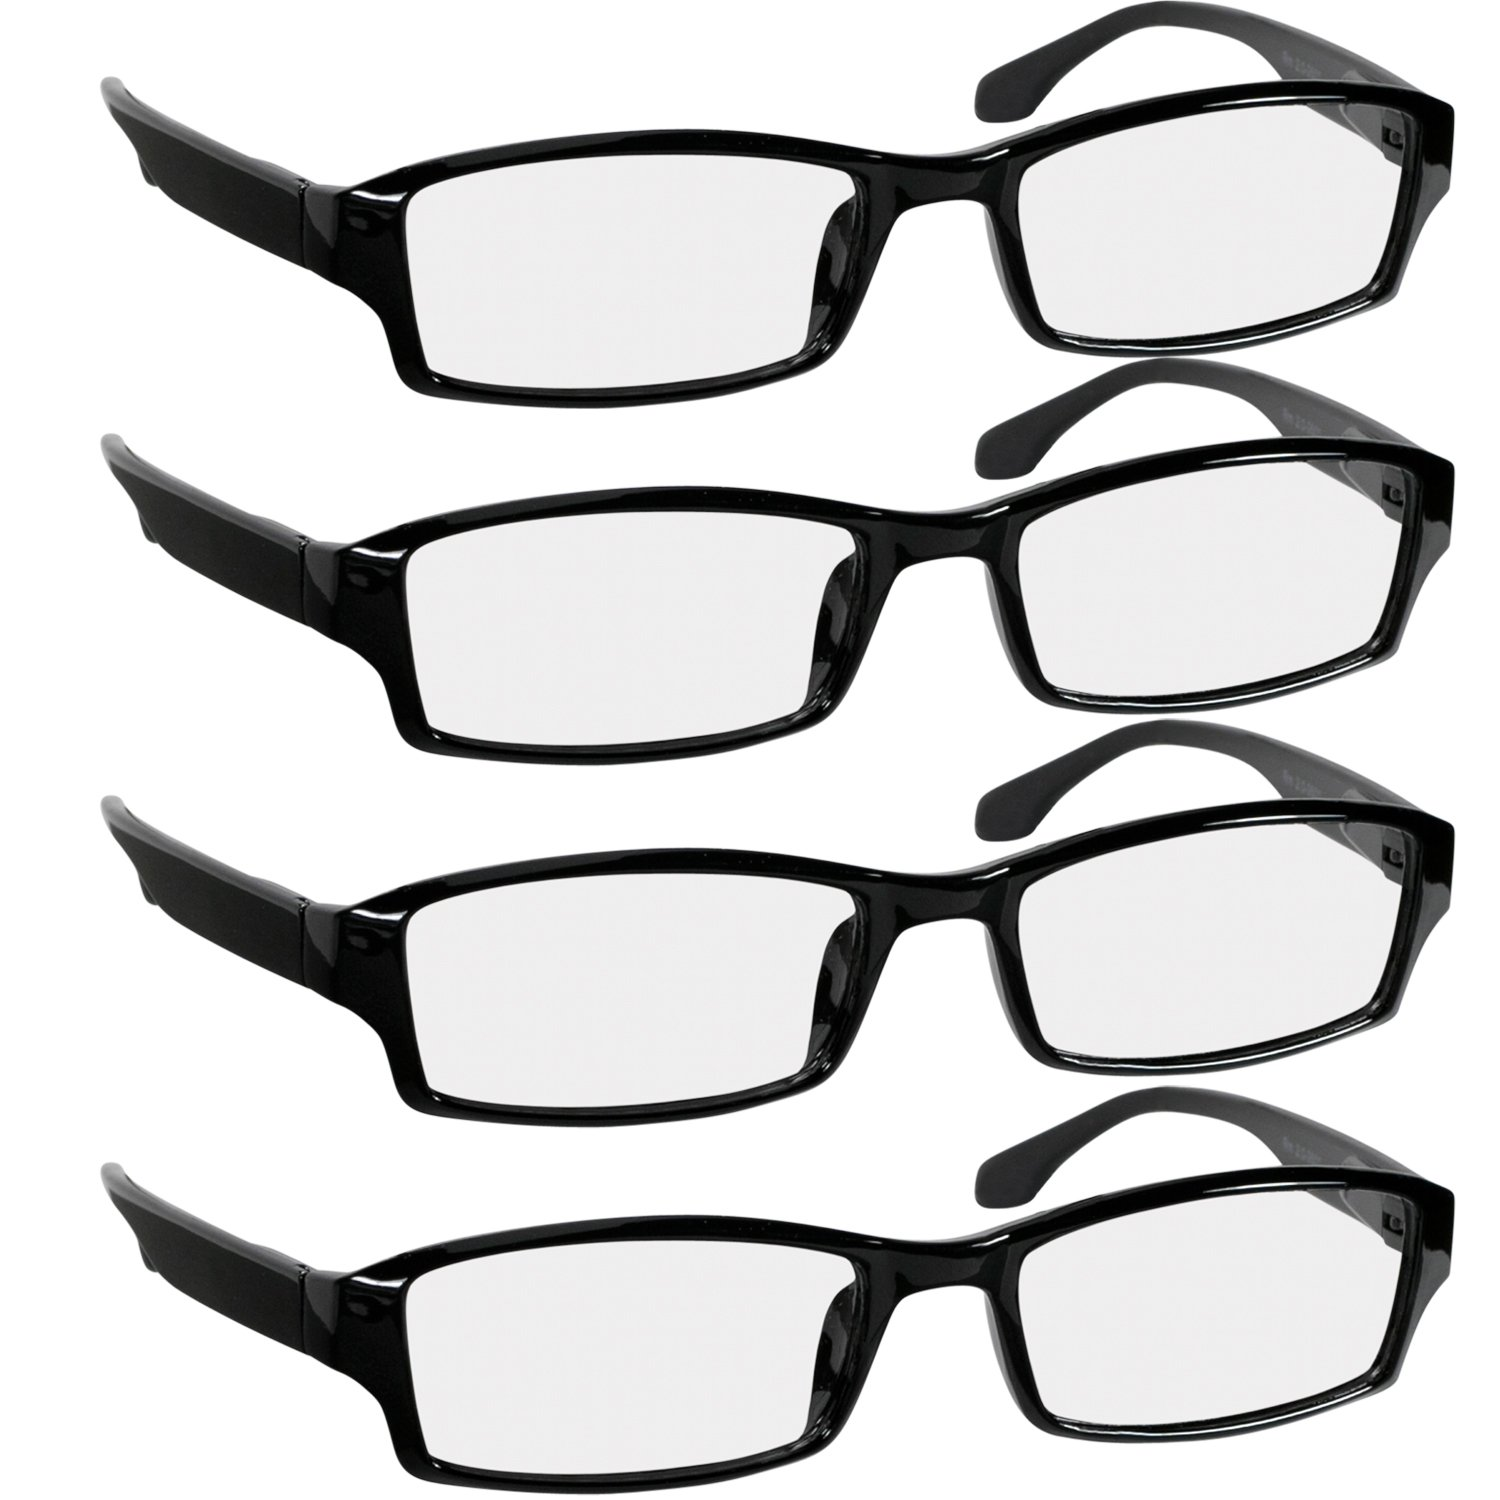 449a9e83d3a6 Best Rated in Reading Glasses   Helpful Customer Reviews - Amazon.com